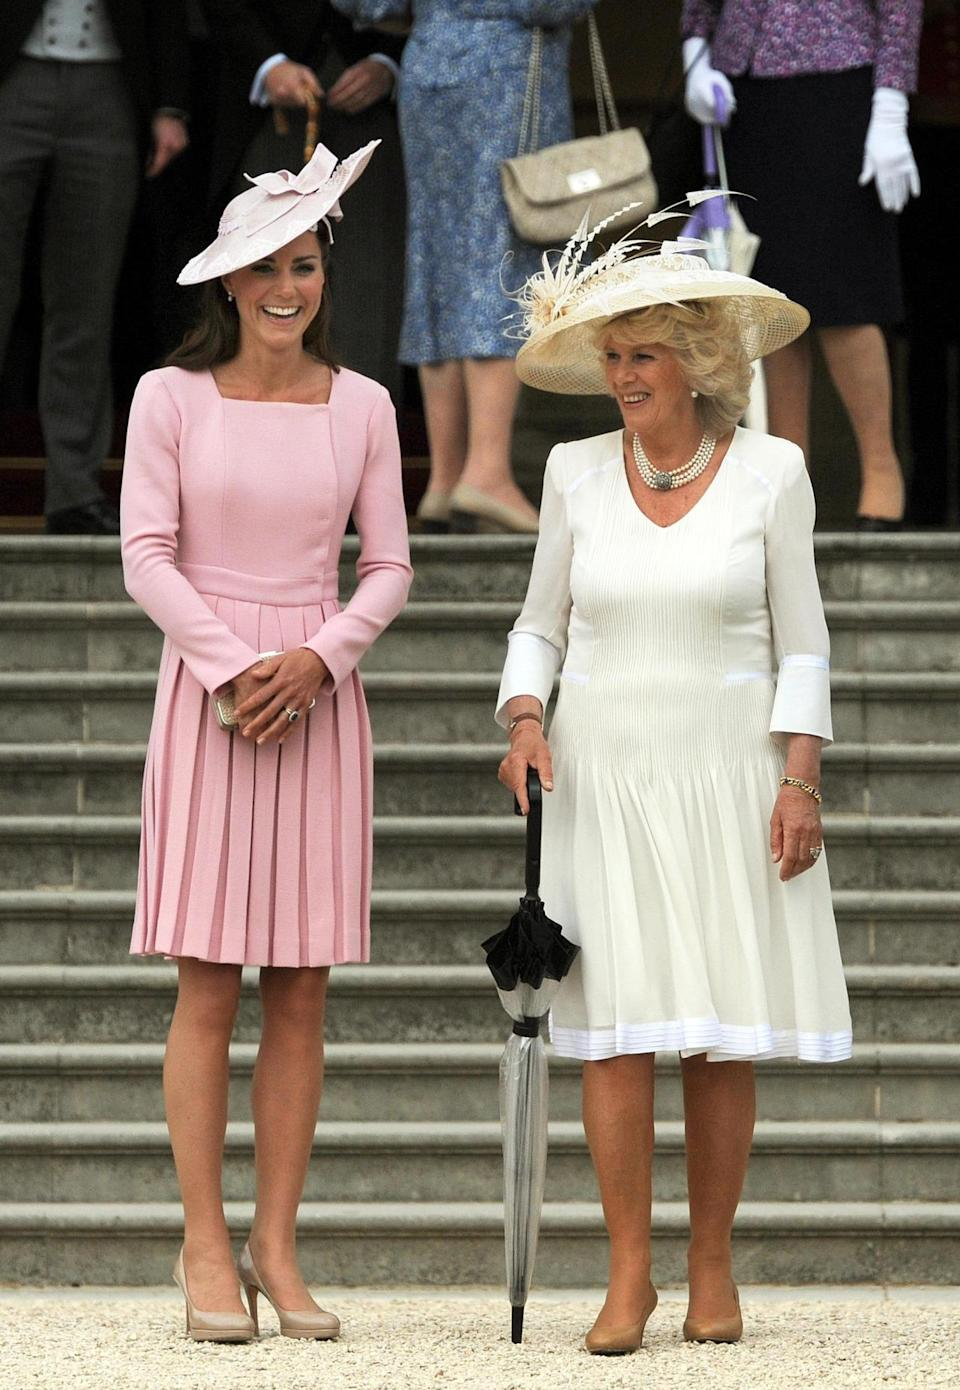 <p>Kate wore a familiar pink pleated dress by Emilia Wickstead for a garden party at Buckingham Palace. She accessorised with a wide-brimmed hat by Jane Corbett and donned a bag and heels from L.K. Bennett.</p><p><i>[Photo: PA]</i></p>